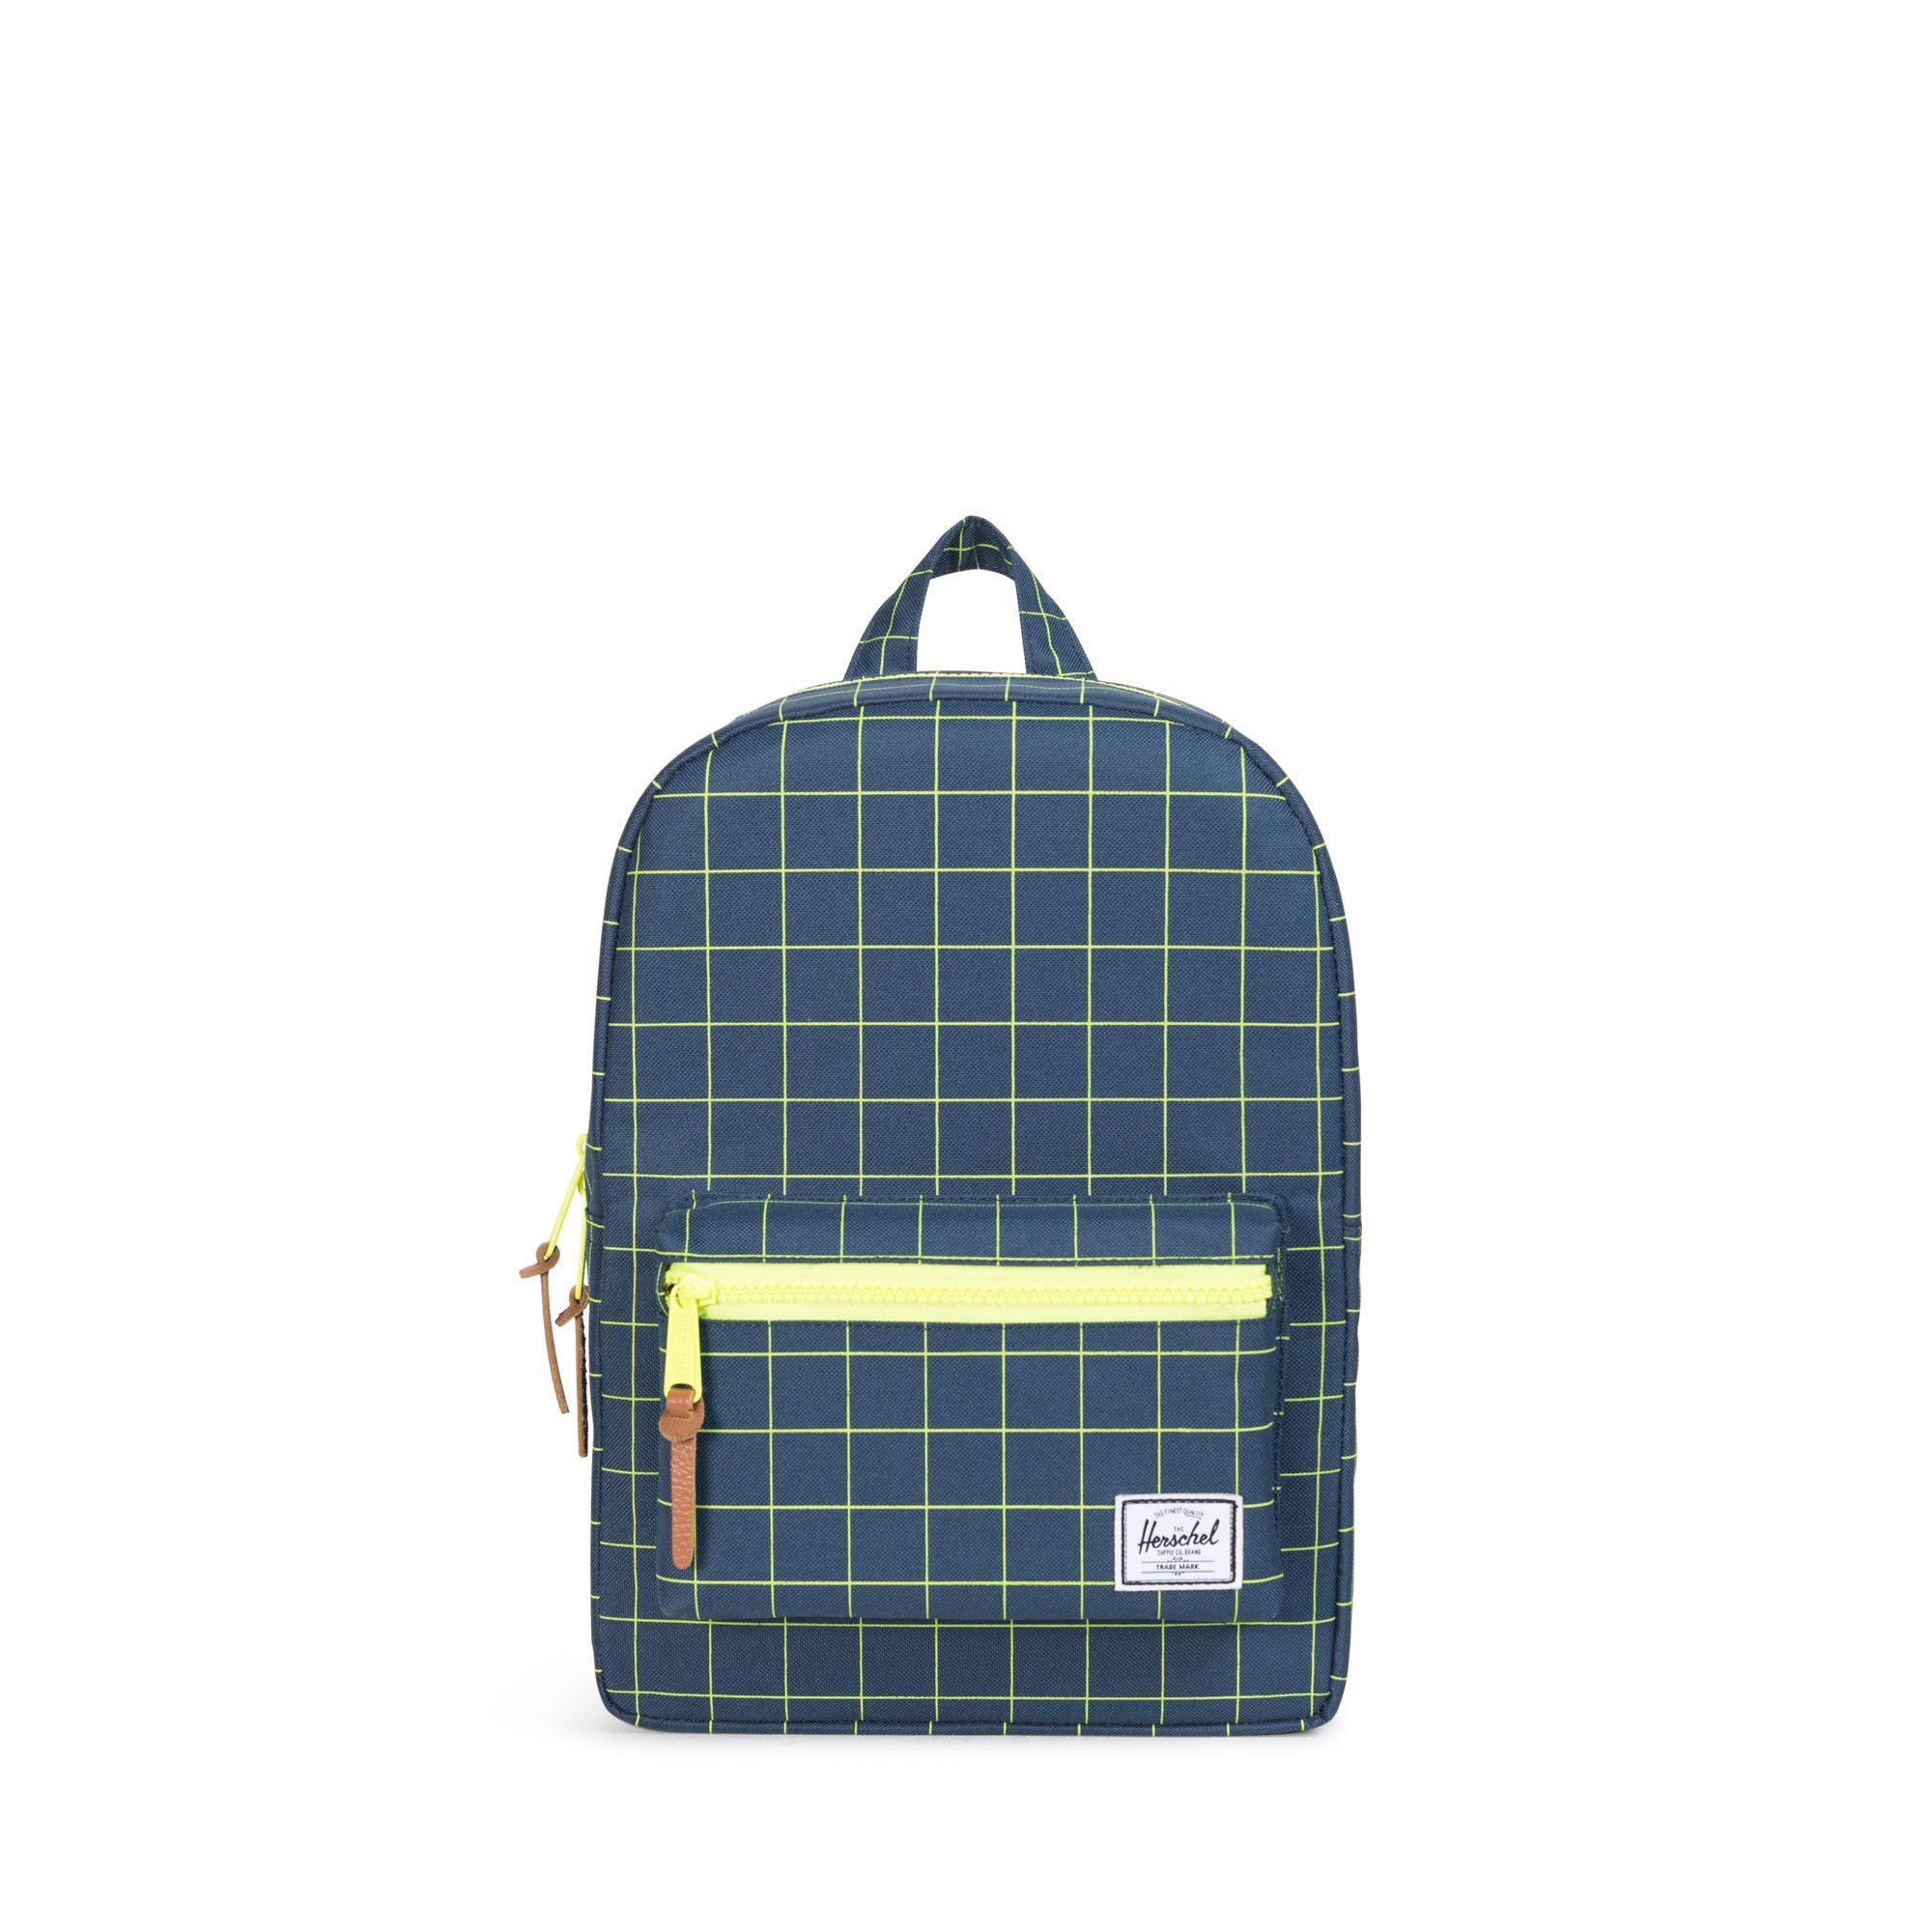 30b6bccb6ca Sized down specifically for children 6 and under, the Herschel Settlement™ Kids  Backpack features exposed plastic zippers and durable custom detailing.